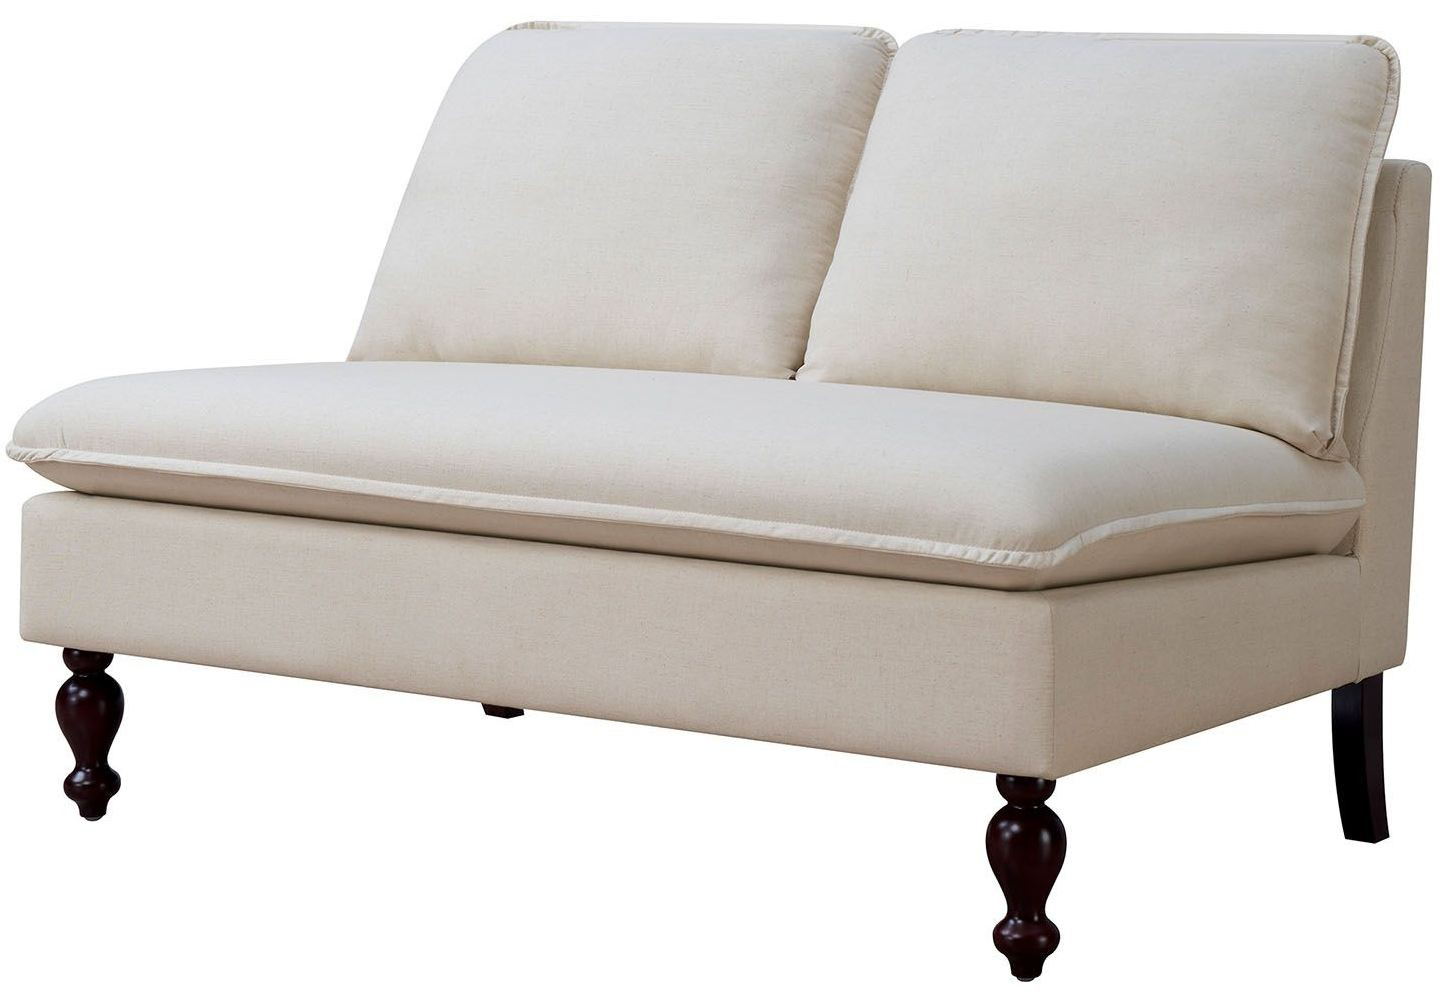 Kenzie Ivory Loveseat Bench From Furniture Of America Coleman Furniture